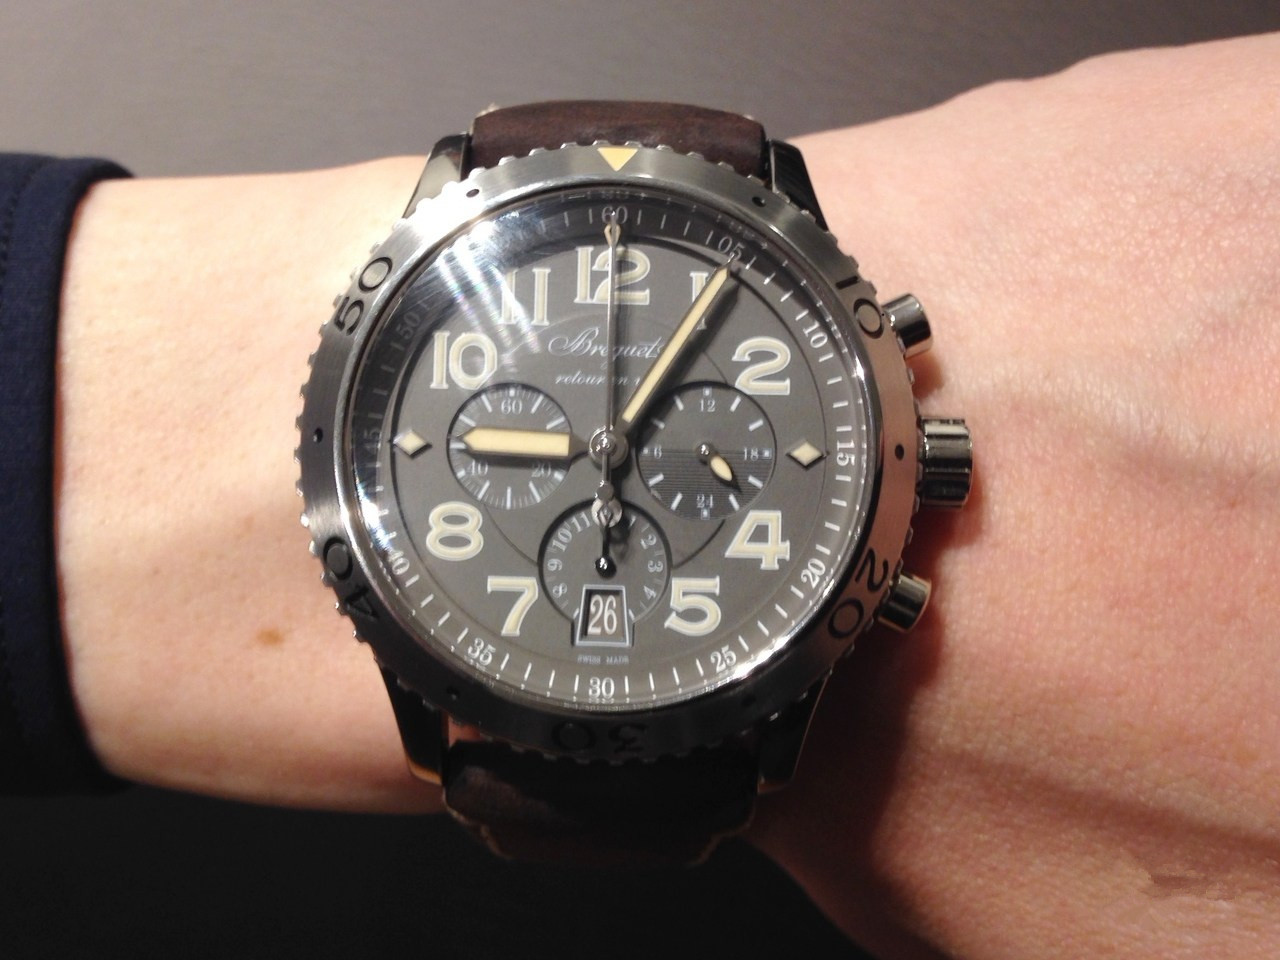 Breguet Type XX - XXI - XXII 3817 Replica Watches With Black Crocodile Straps